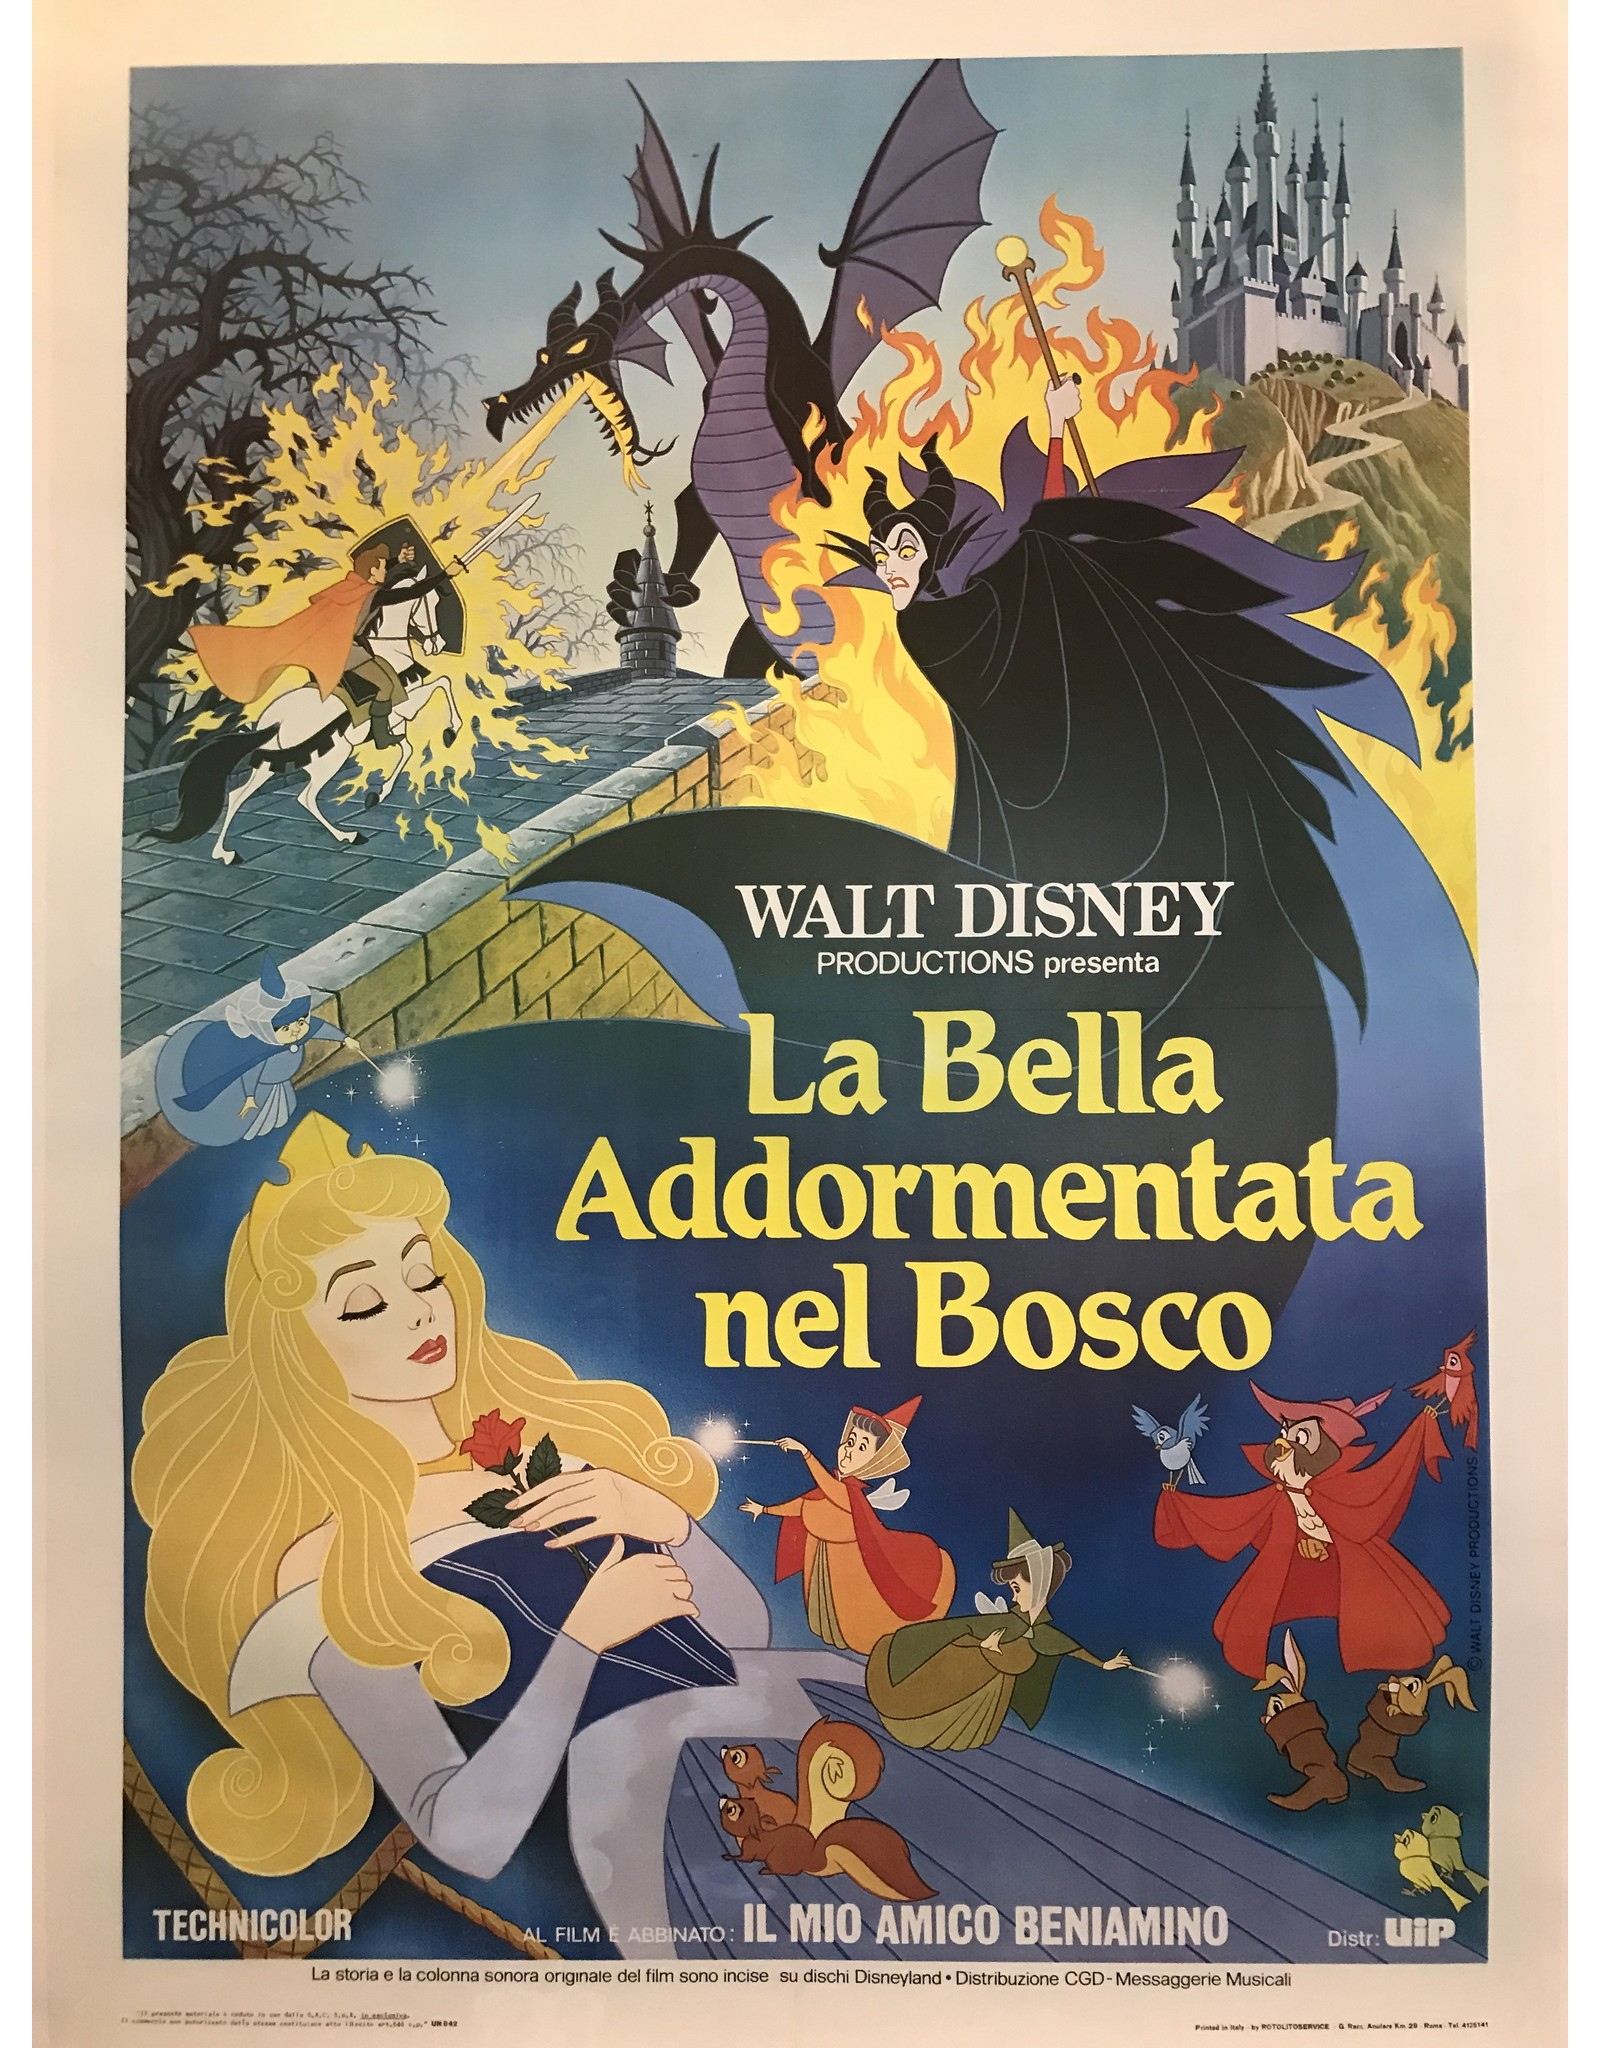 SPV Walt Disney La Bella Addormentata nel Bosco (Italian Sleeping Beauty)